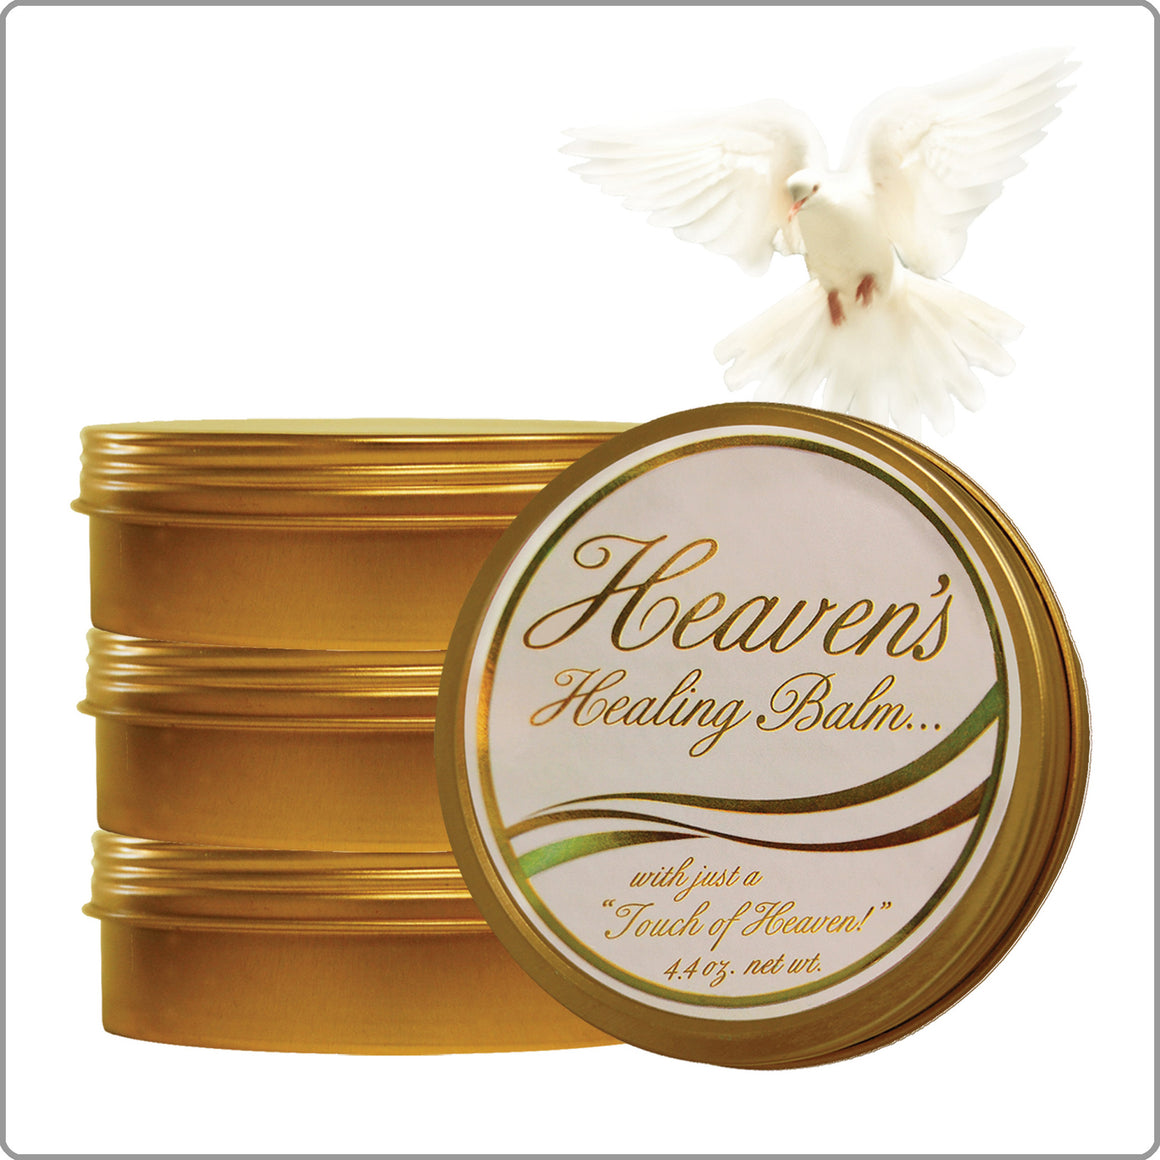 4-Pack Heaven's Healing Balm 4 oz. tins with FREE SHIPPING!